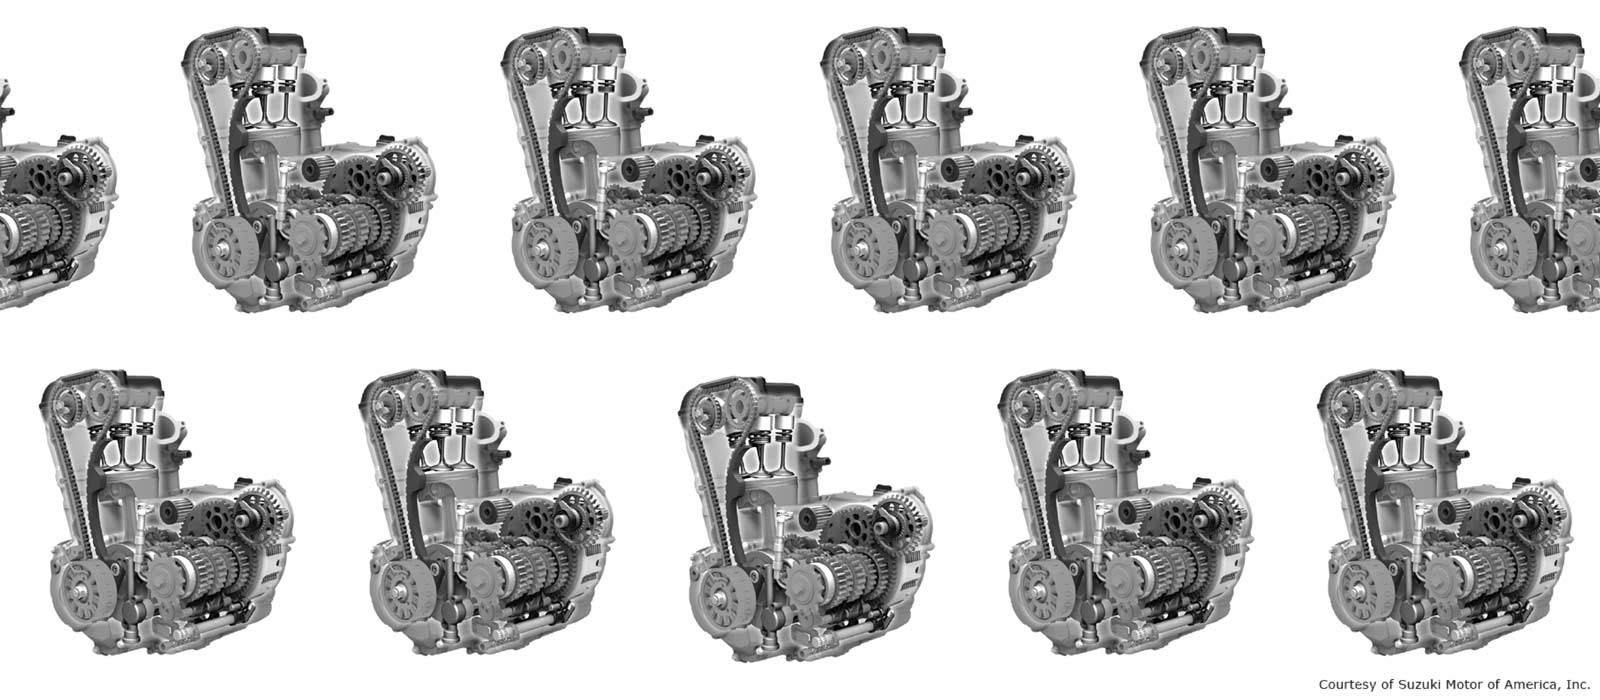 4-Stroke Engines: What Are They & How Do They Work?